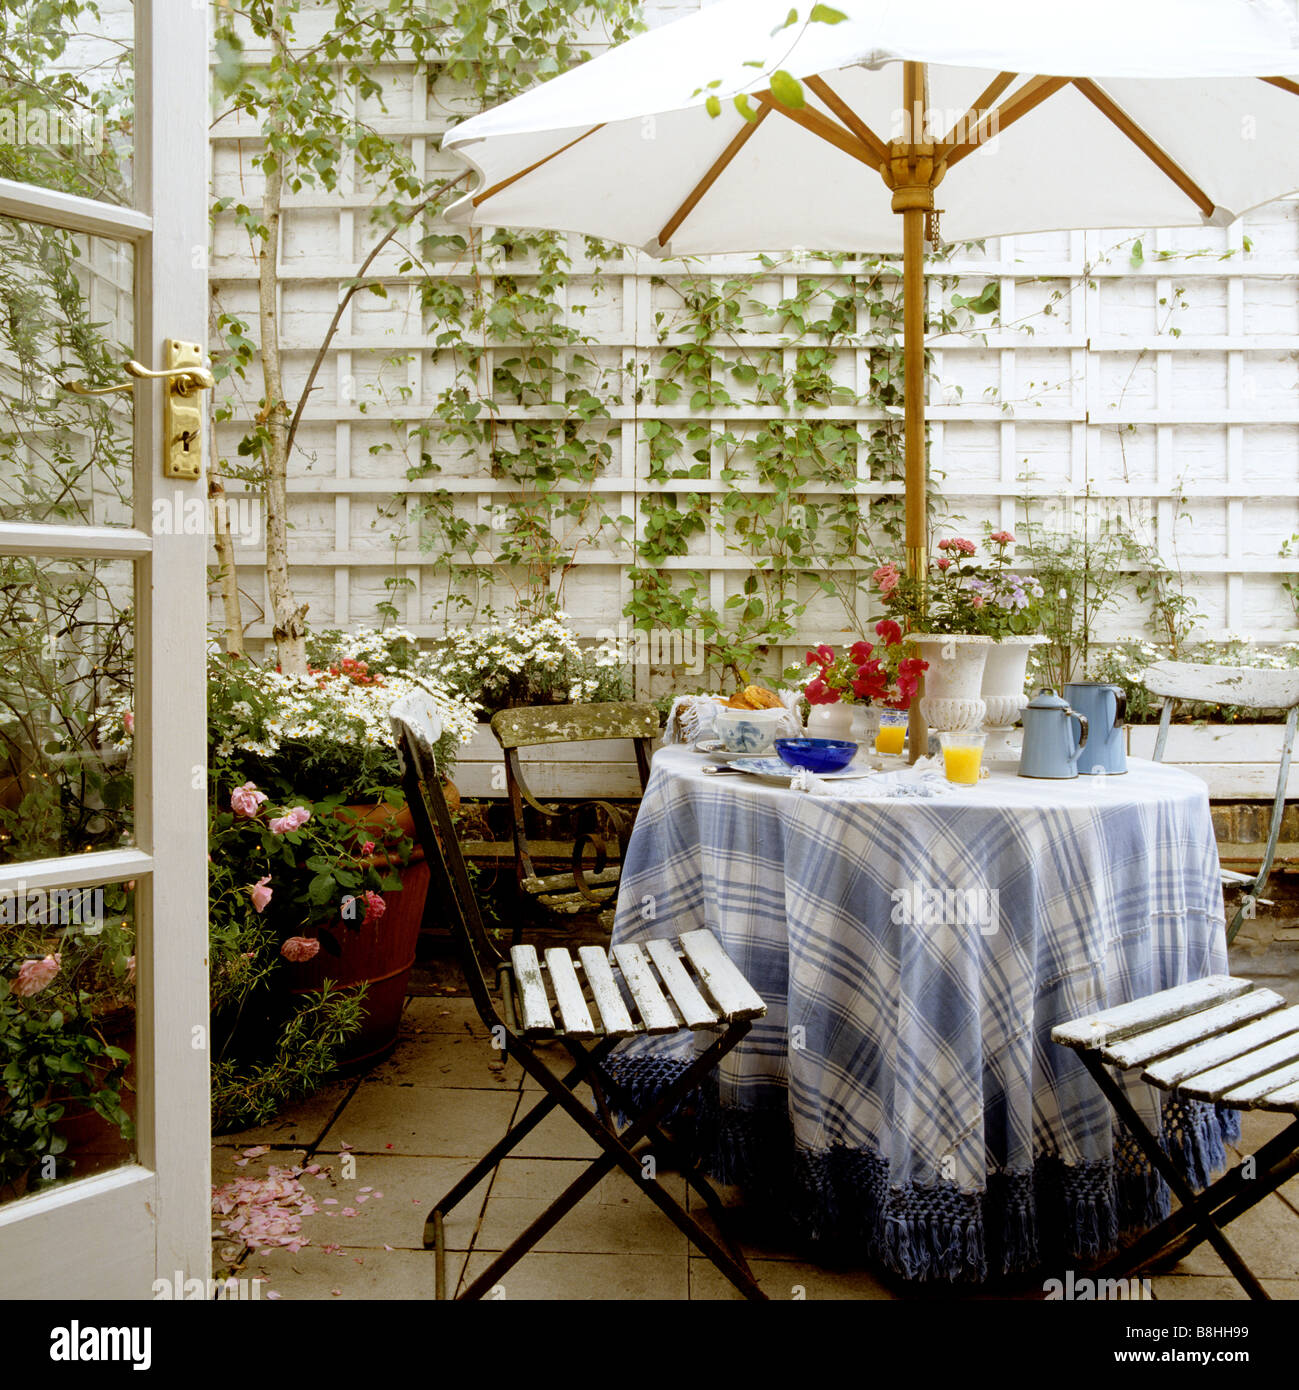 Breakfast table with blue and white checkered and fringed tablecloth and french iron cafe chairs in a London patio - Stock Image